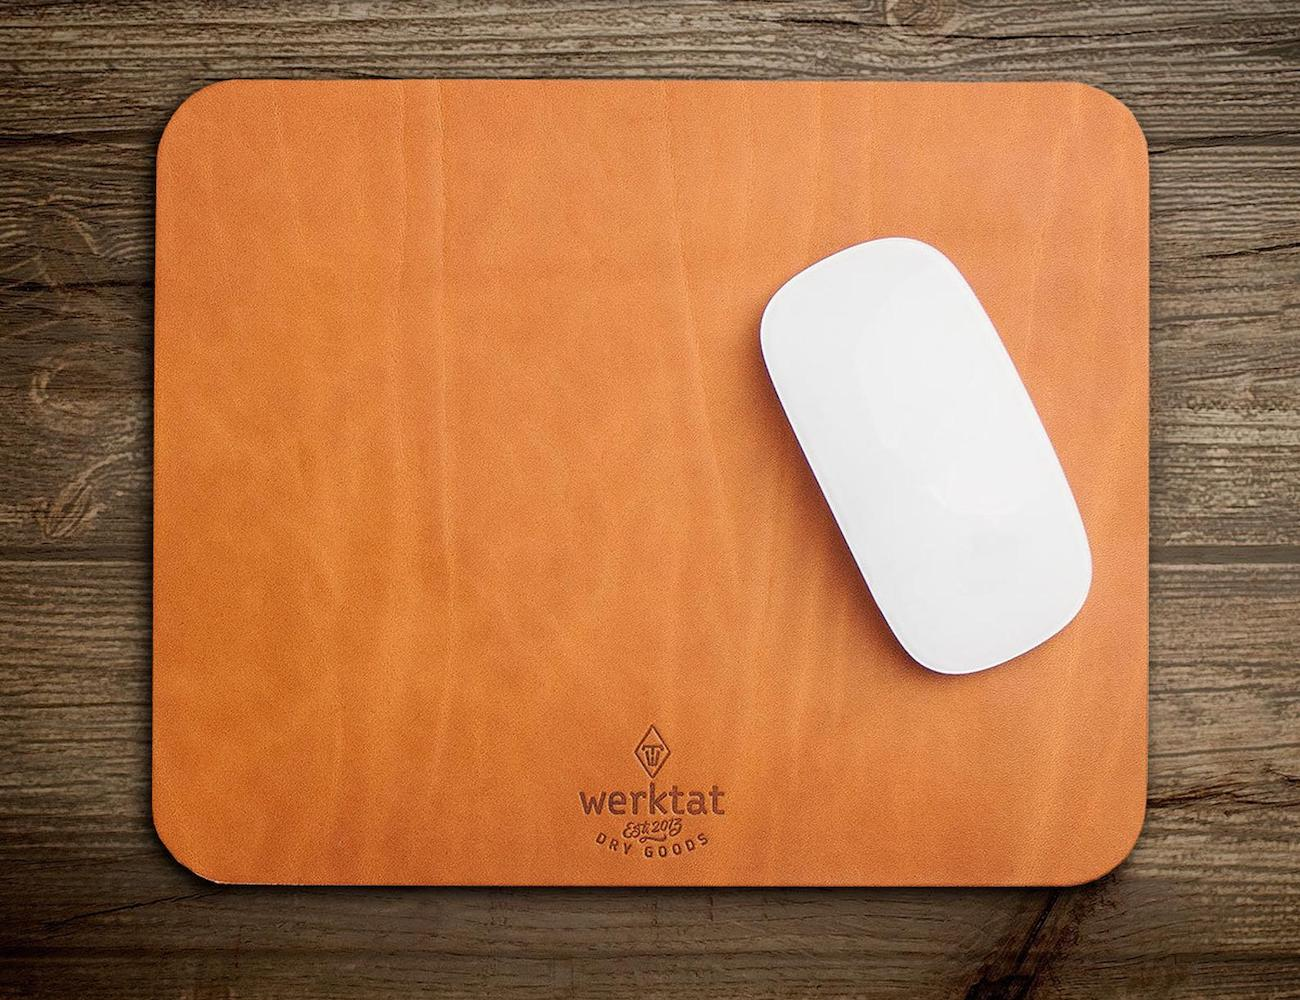 werktat Vegetable Tanned Leather Mouse Pad brings style to your workspace